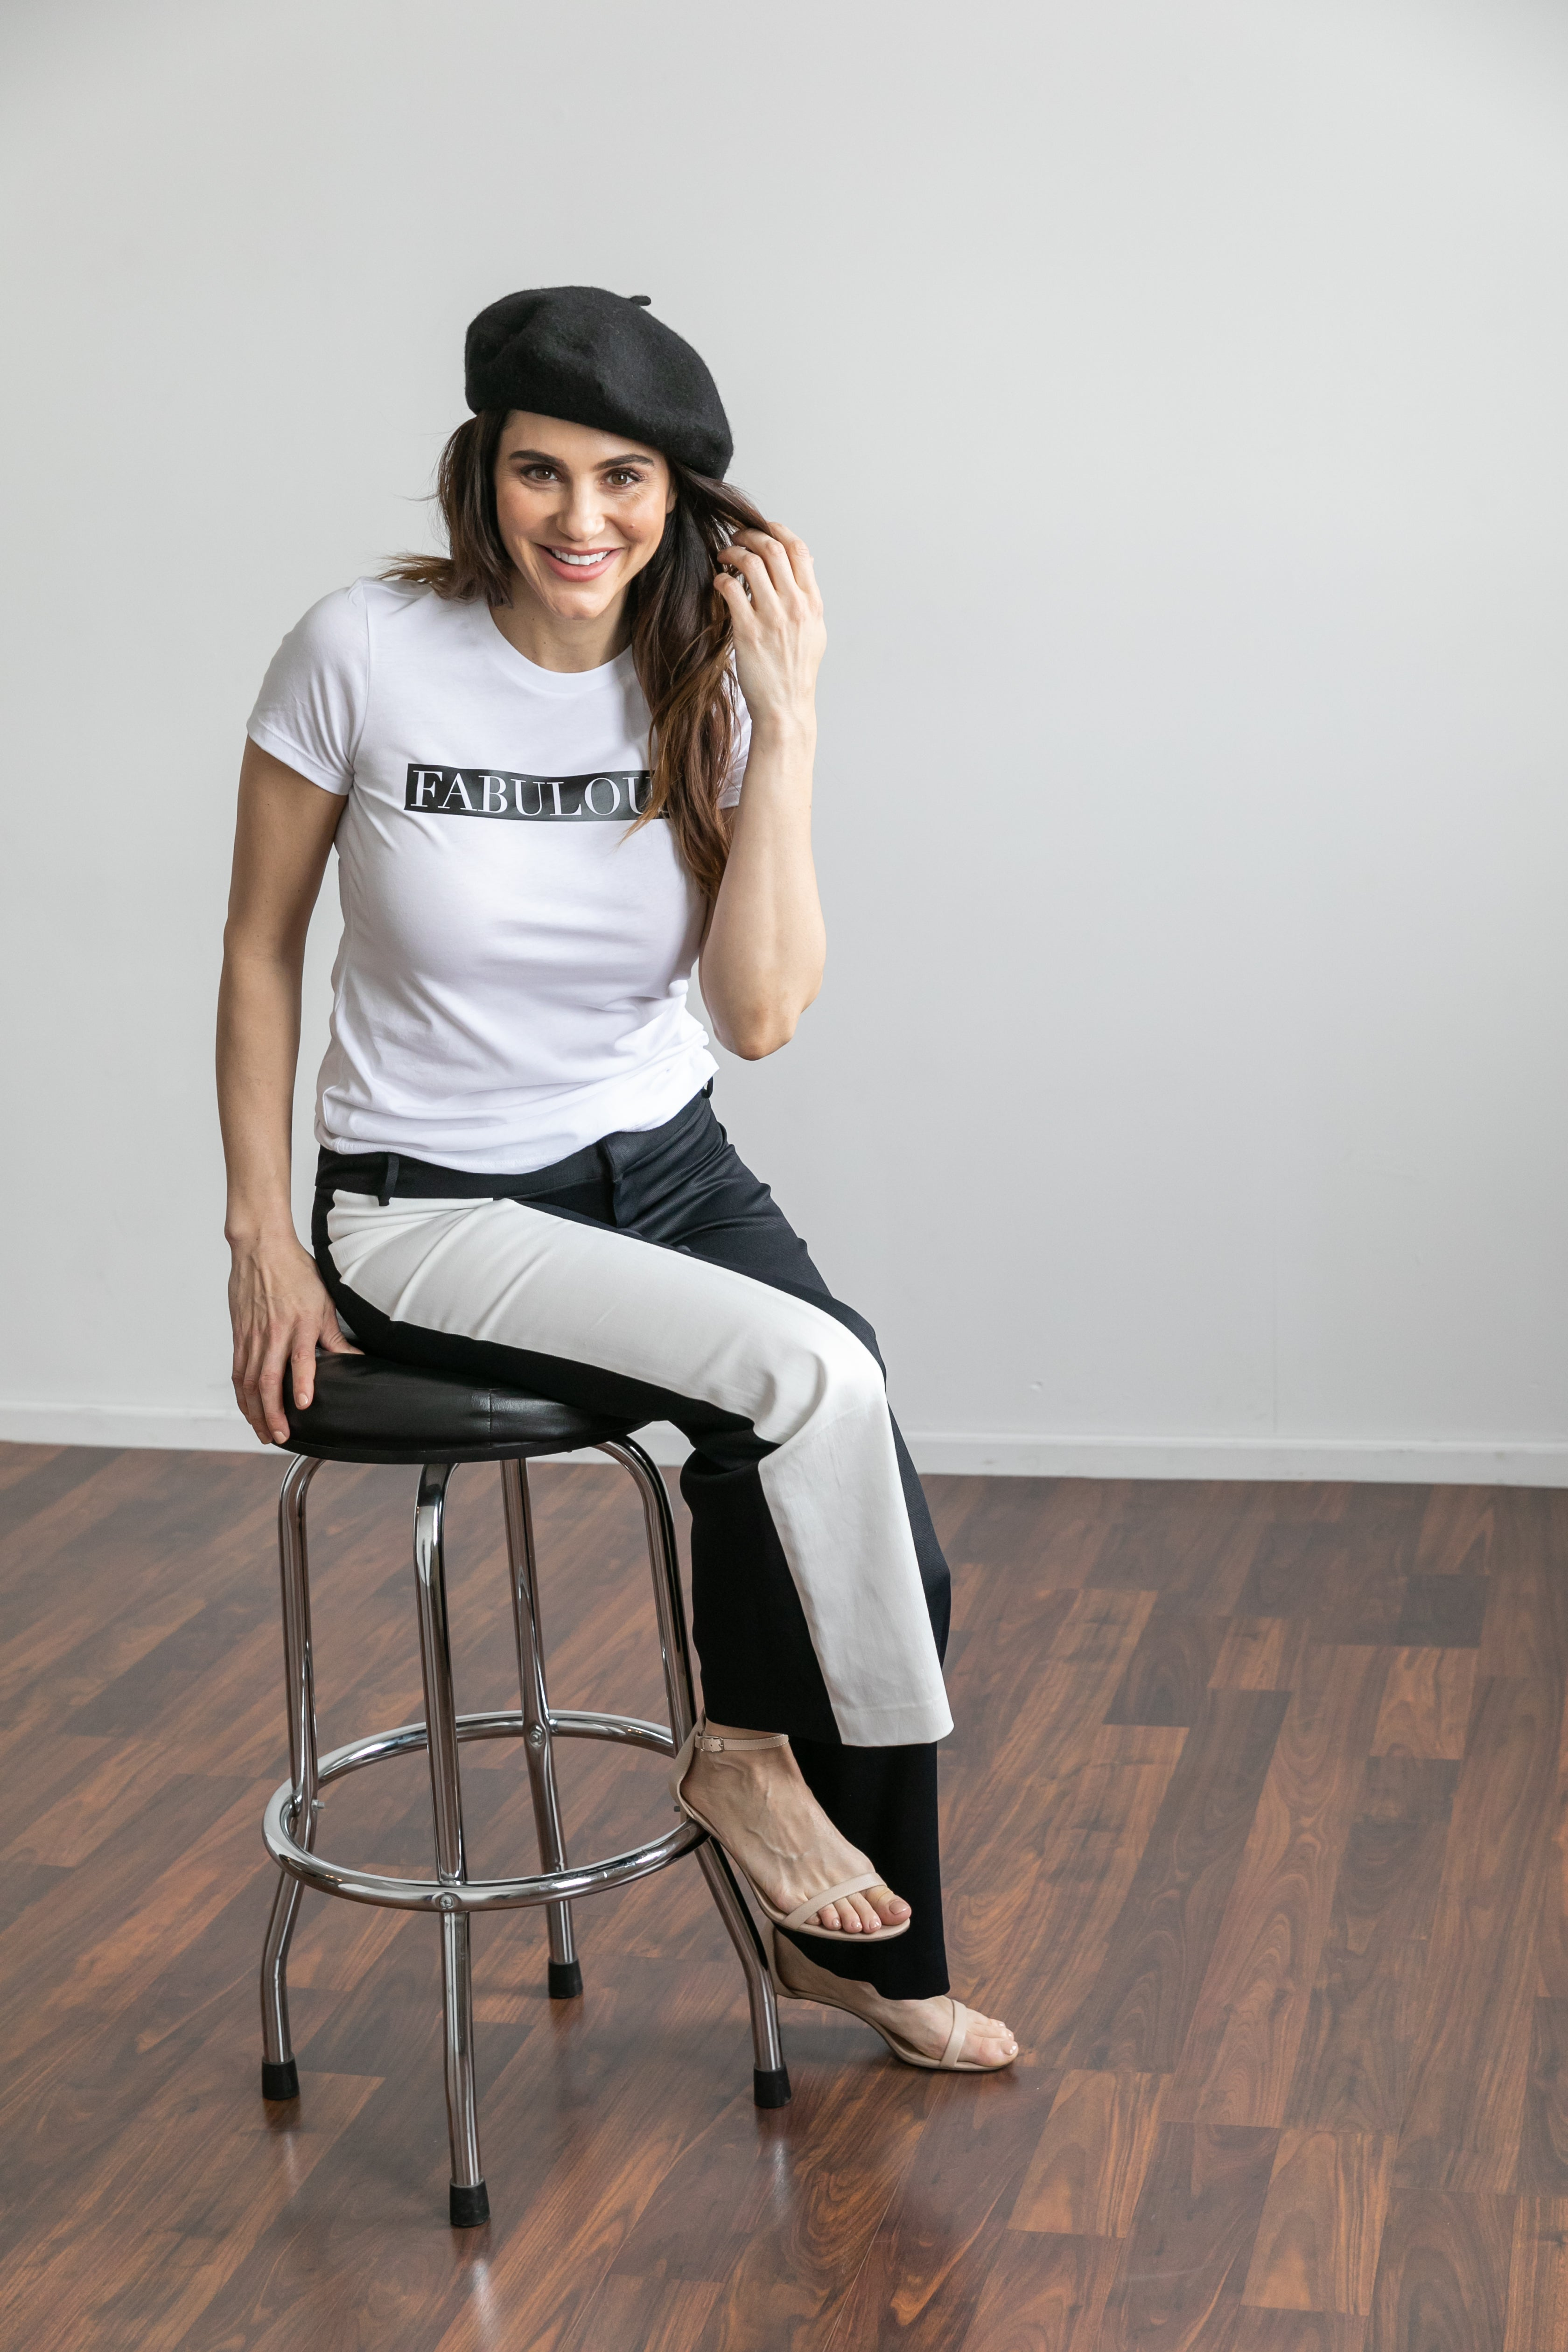 Black and White Fabulous Soft Tee